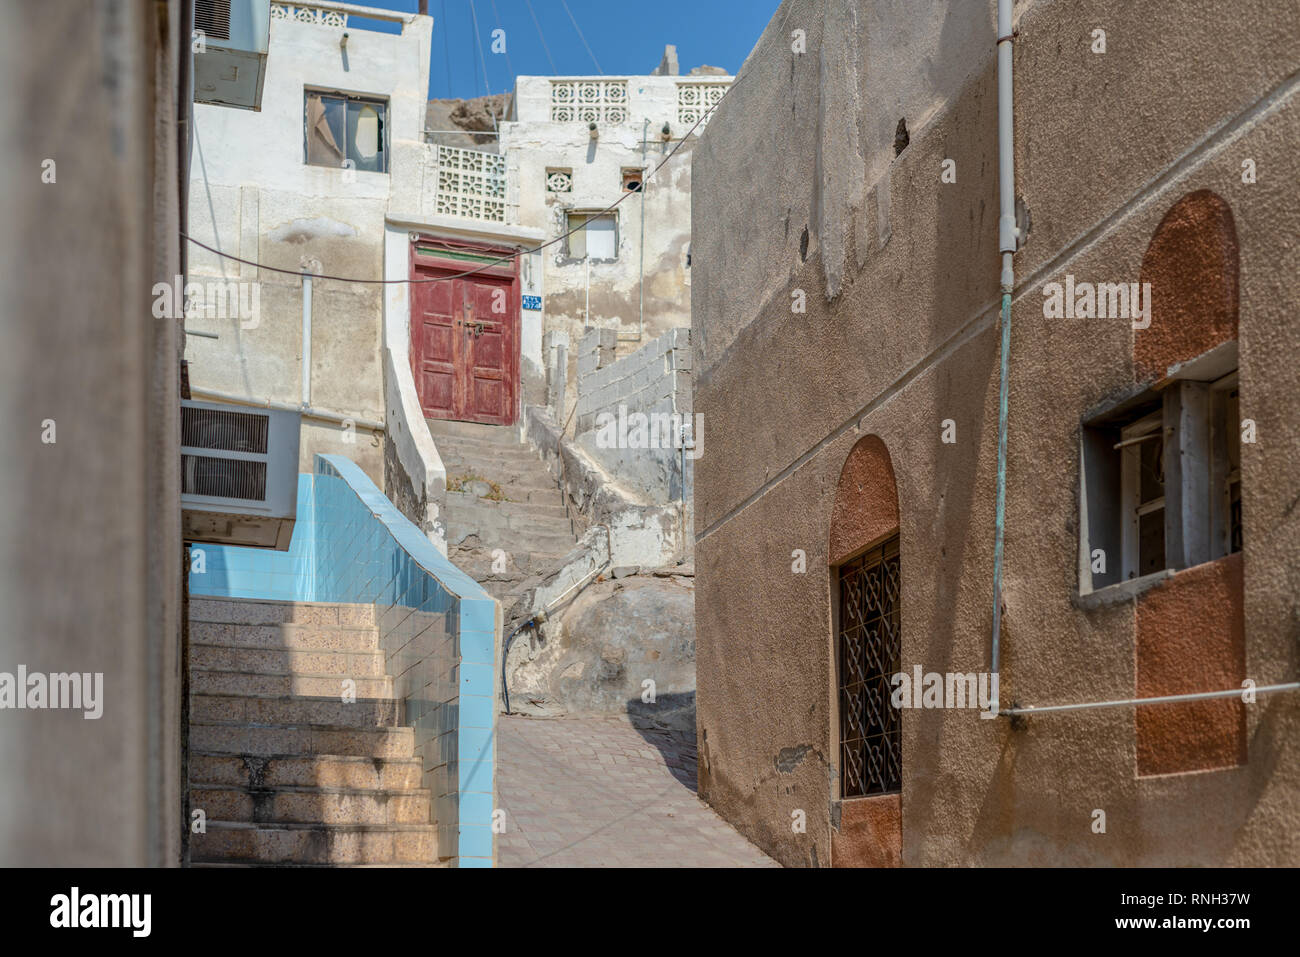 Starecases and red door in the historical district of Matrah, City of Muscat, Sultanate of Oman. - Stock Image